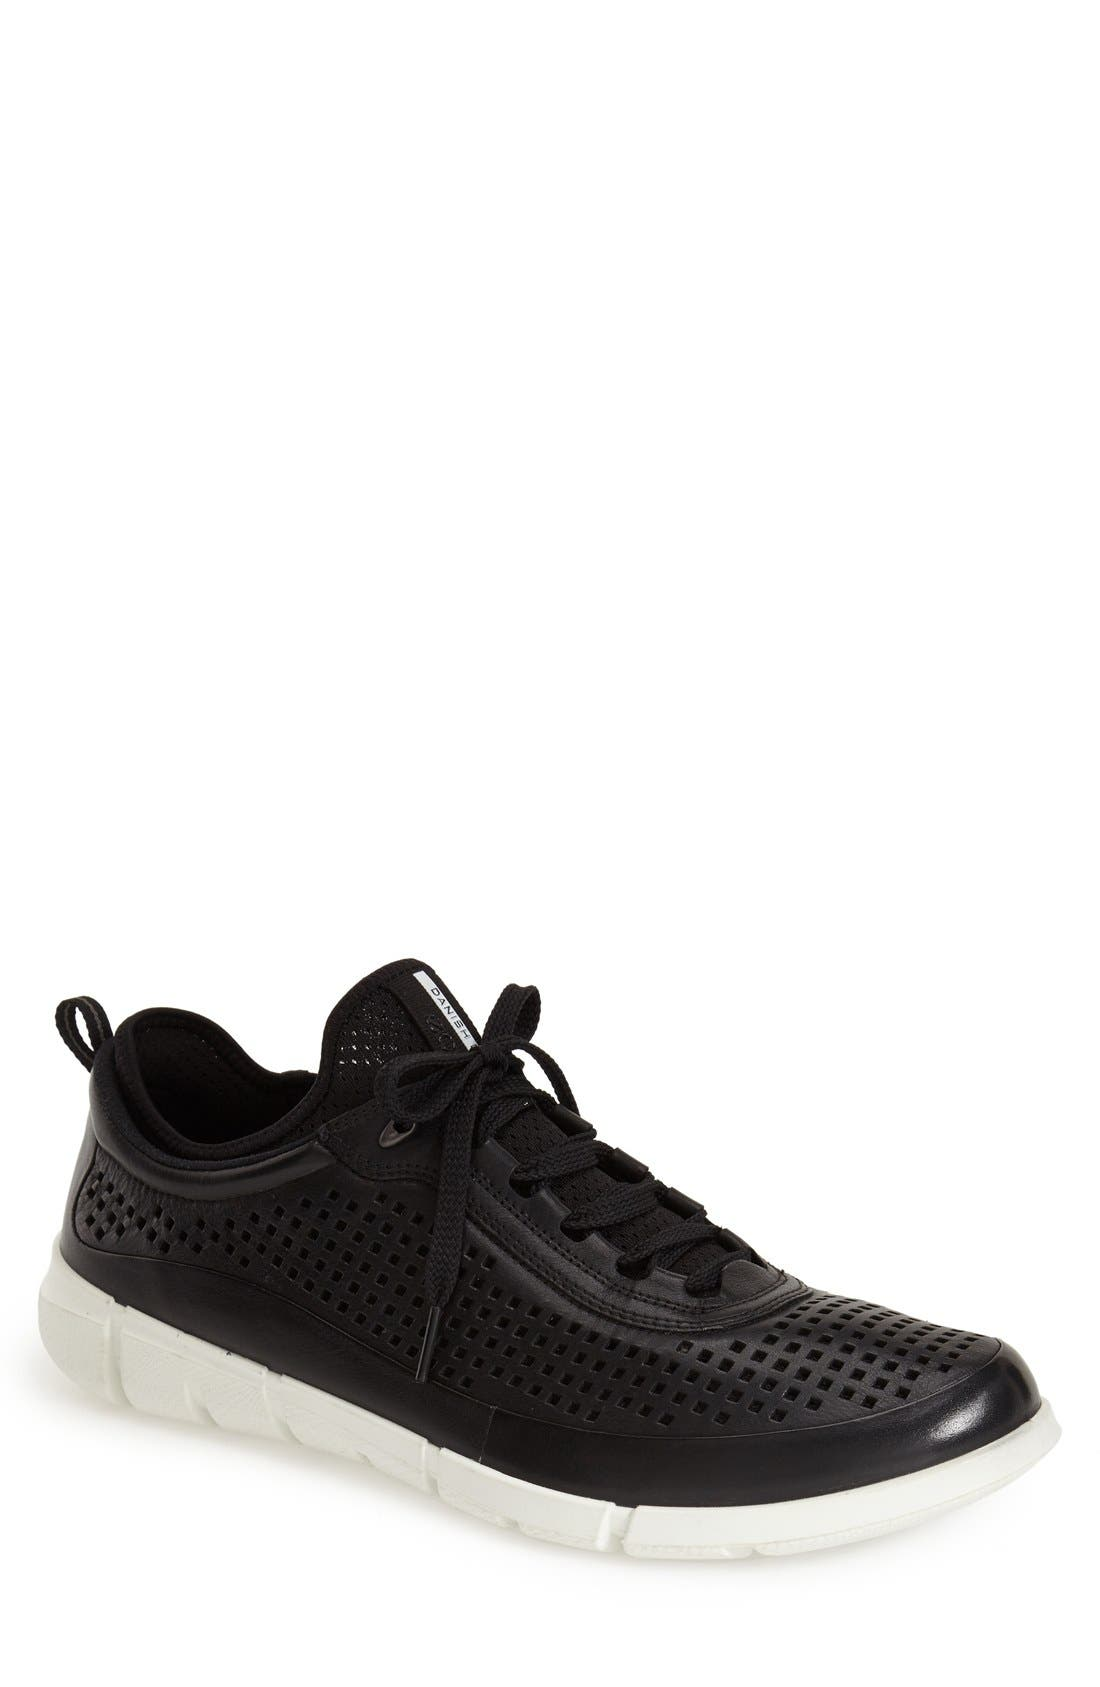 'Intrinsic' Sneaker,                             Main thumbnail 1, color,                             Black Leather